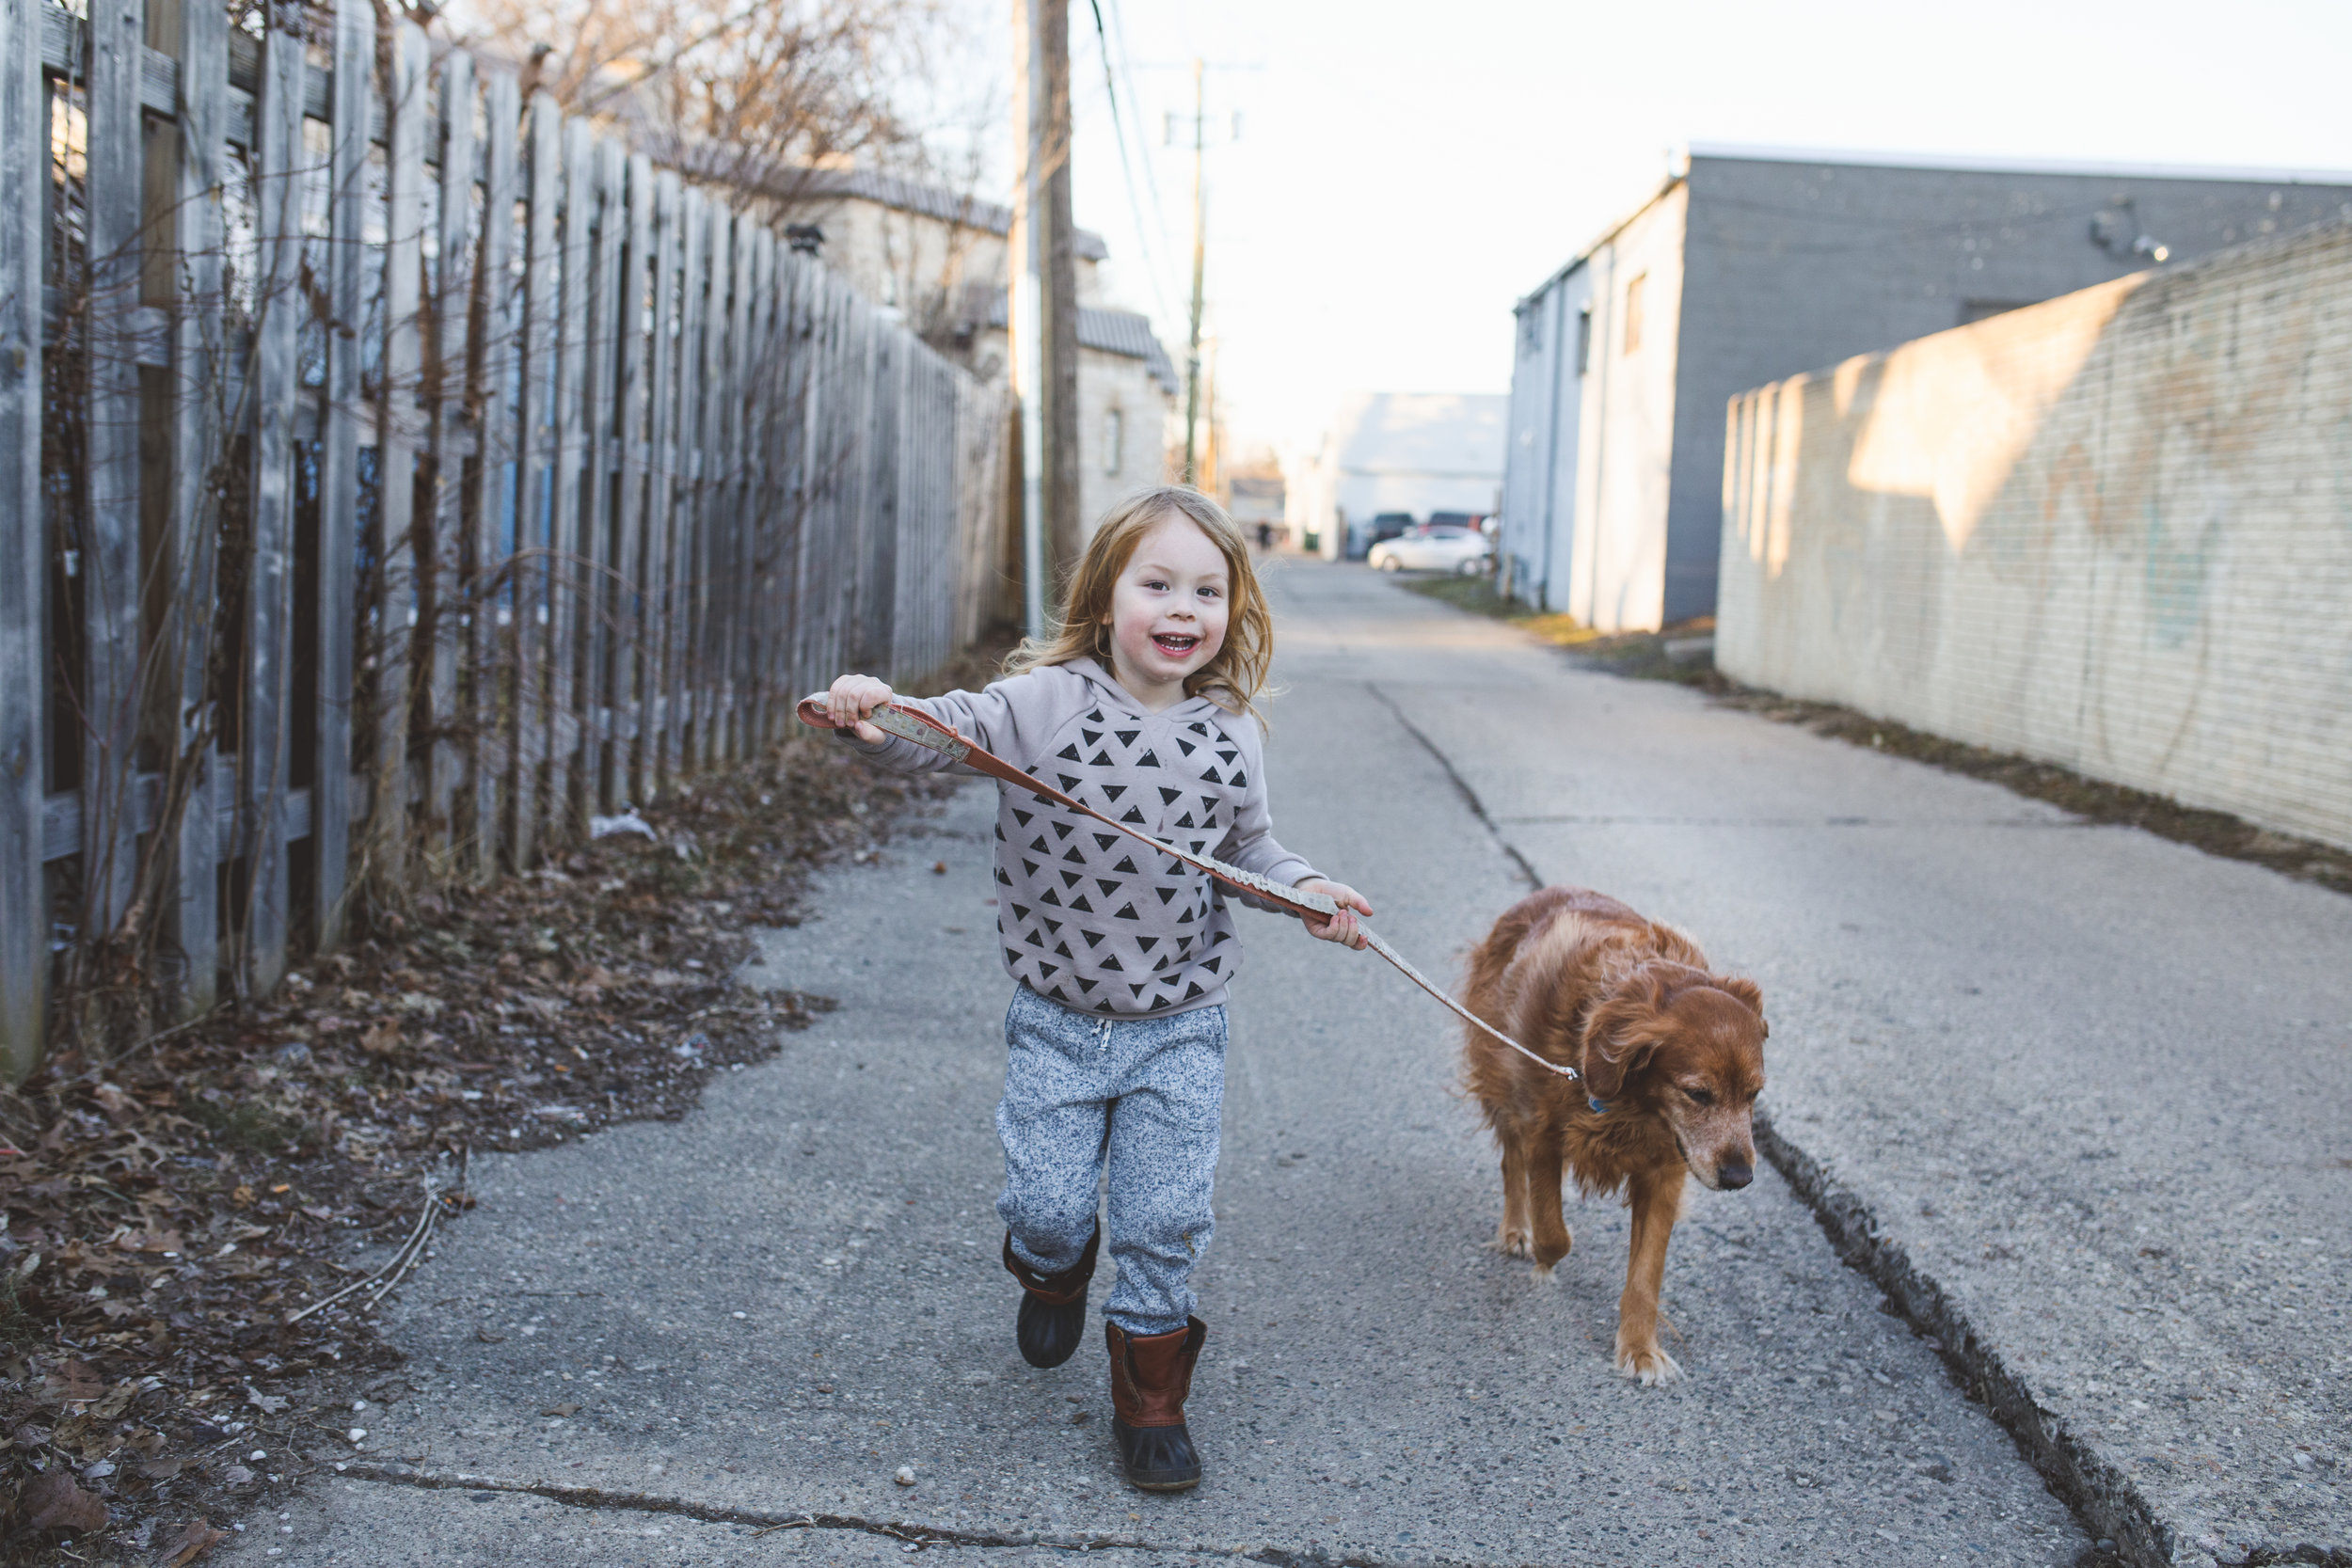 Little boy and dog in alley.